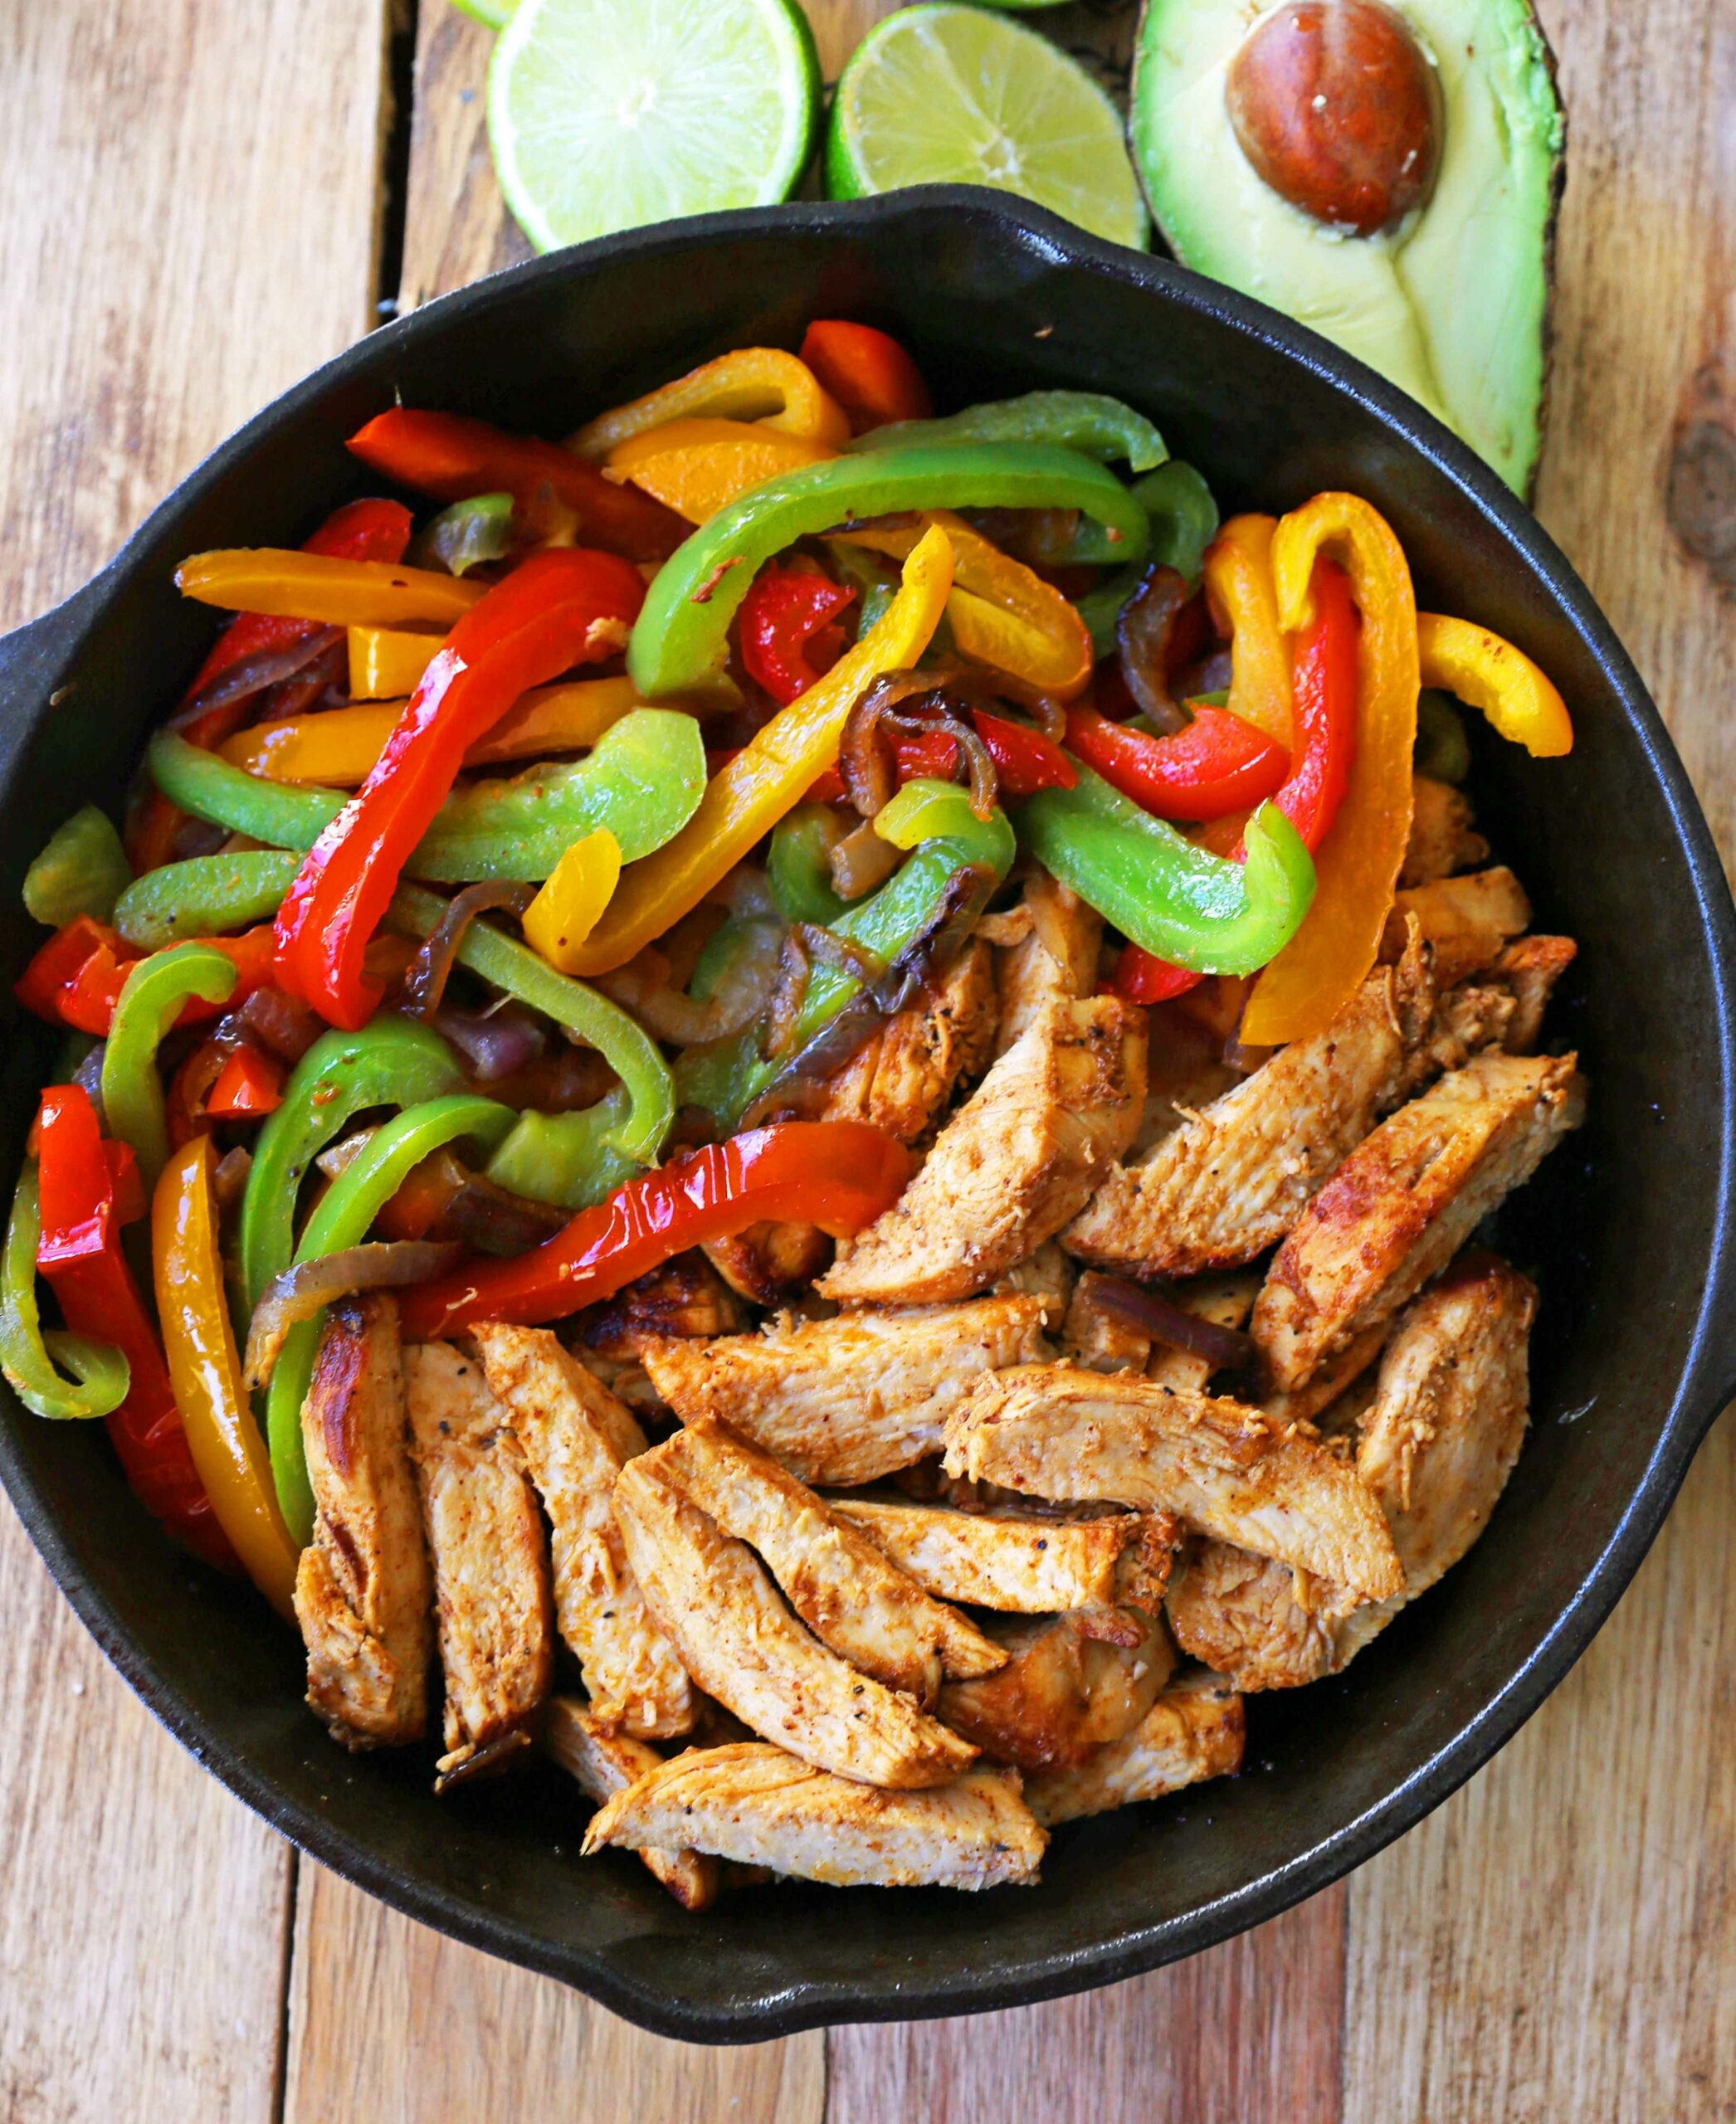 Chicken Fajitas - Recipes Chicken Breast Bell Peppers Onions